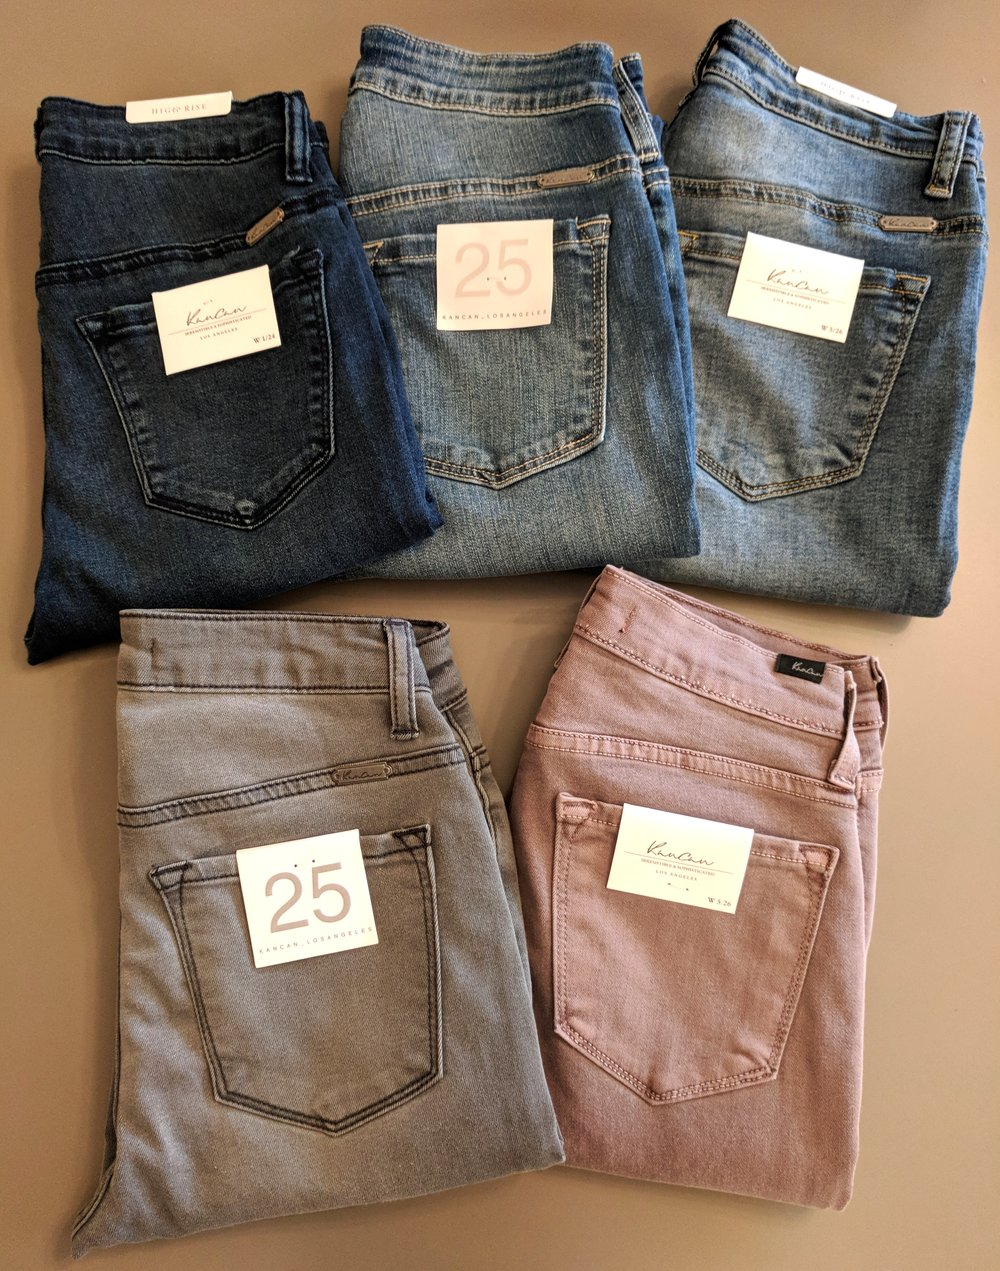 New KanCan High Rise Jeans in wood rose, grey, medium and dark wash demin $52